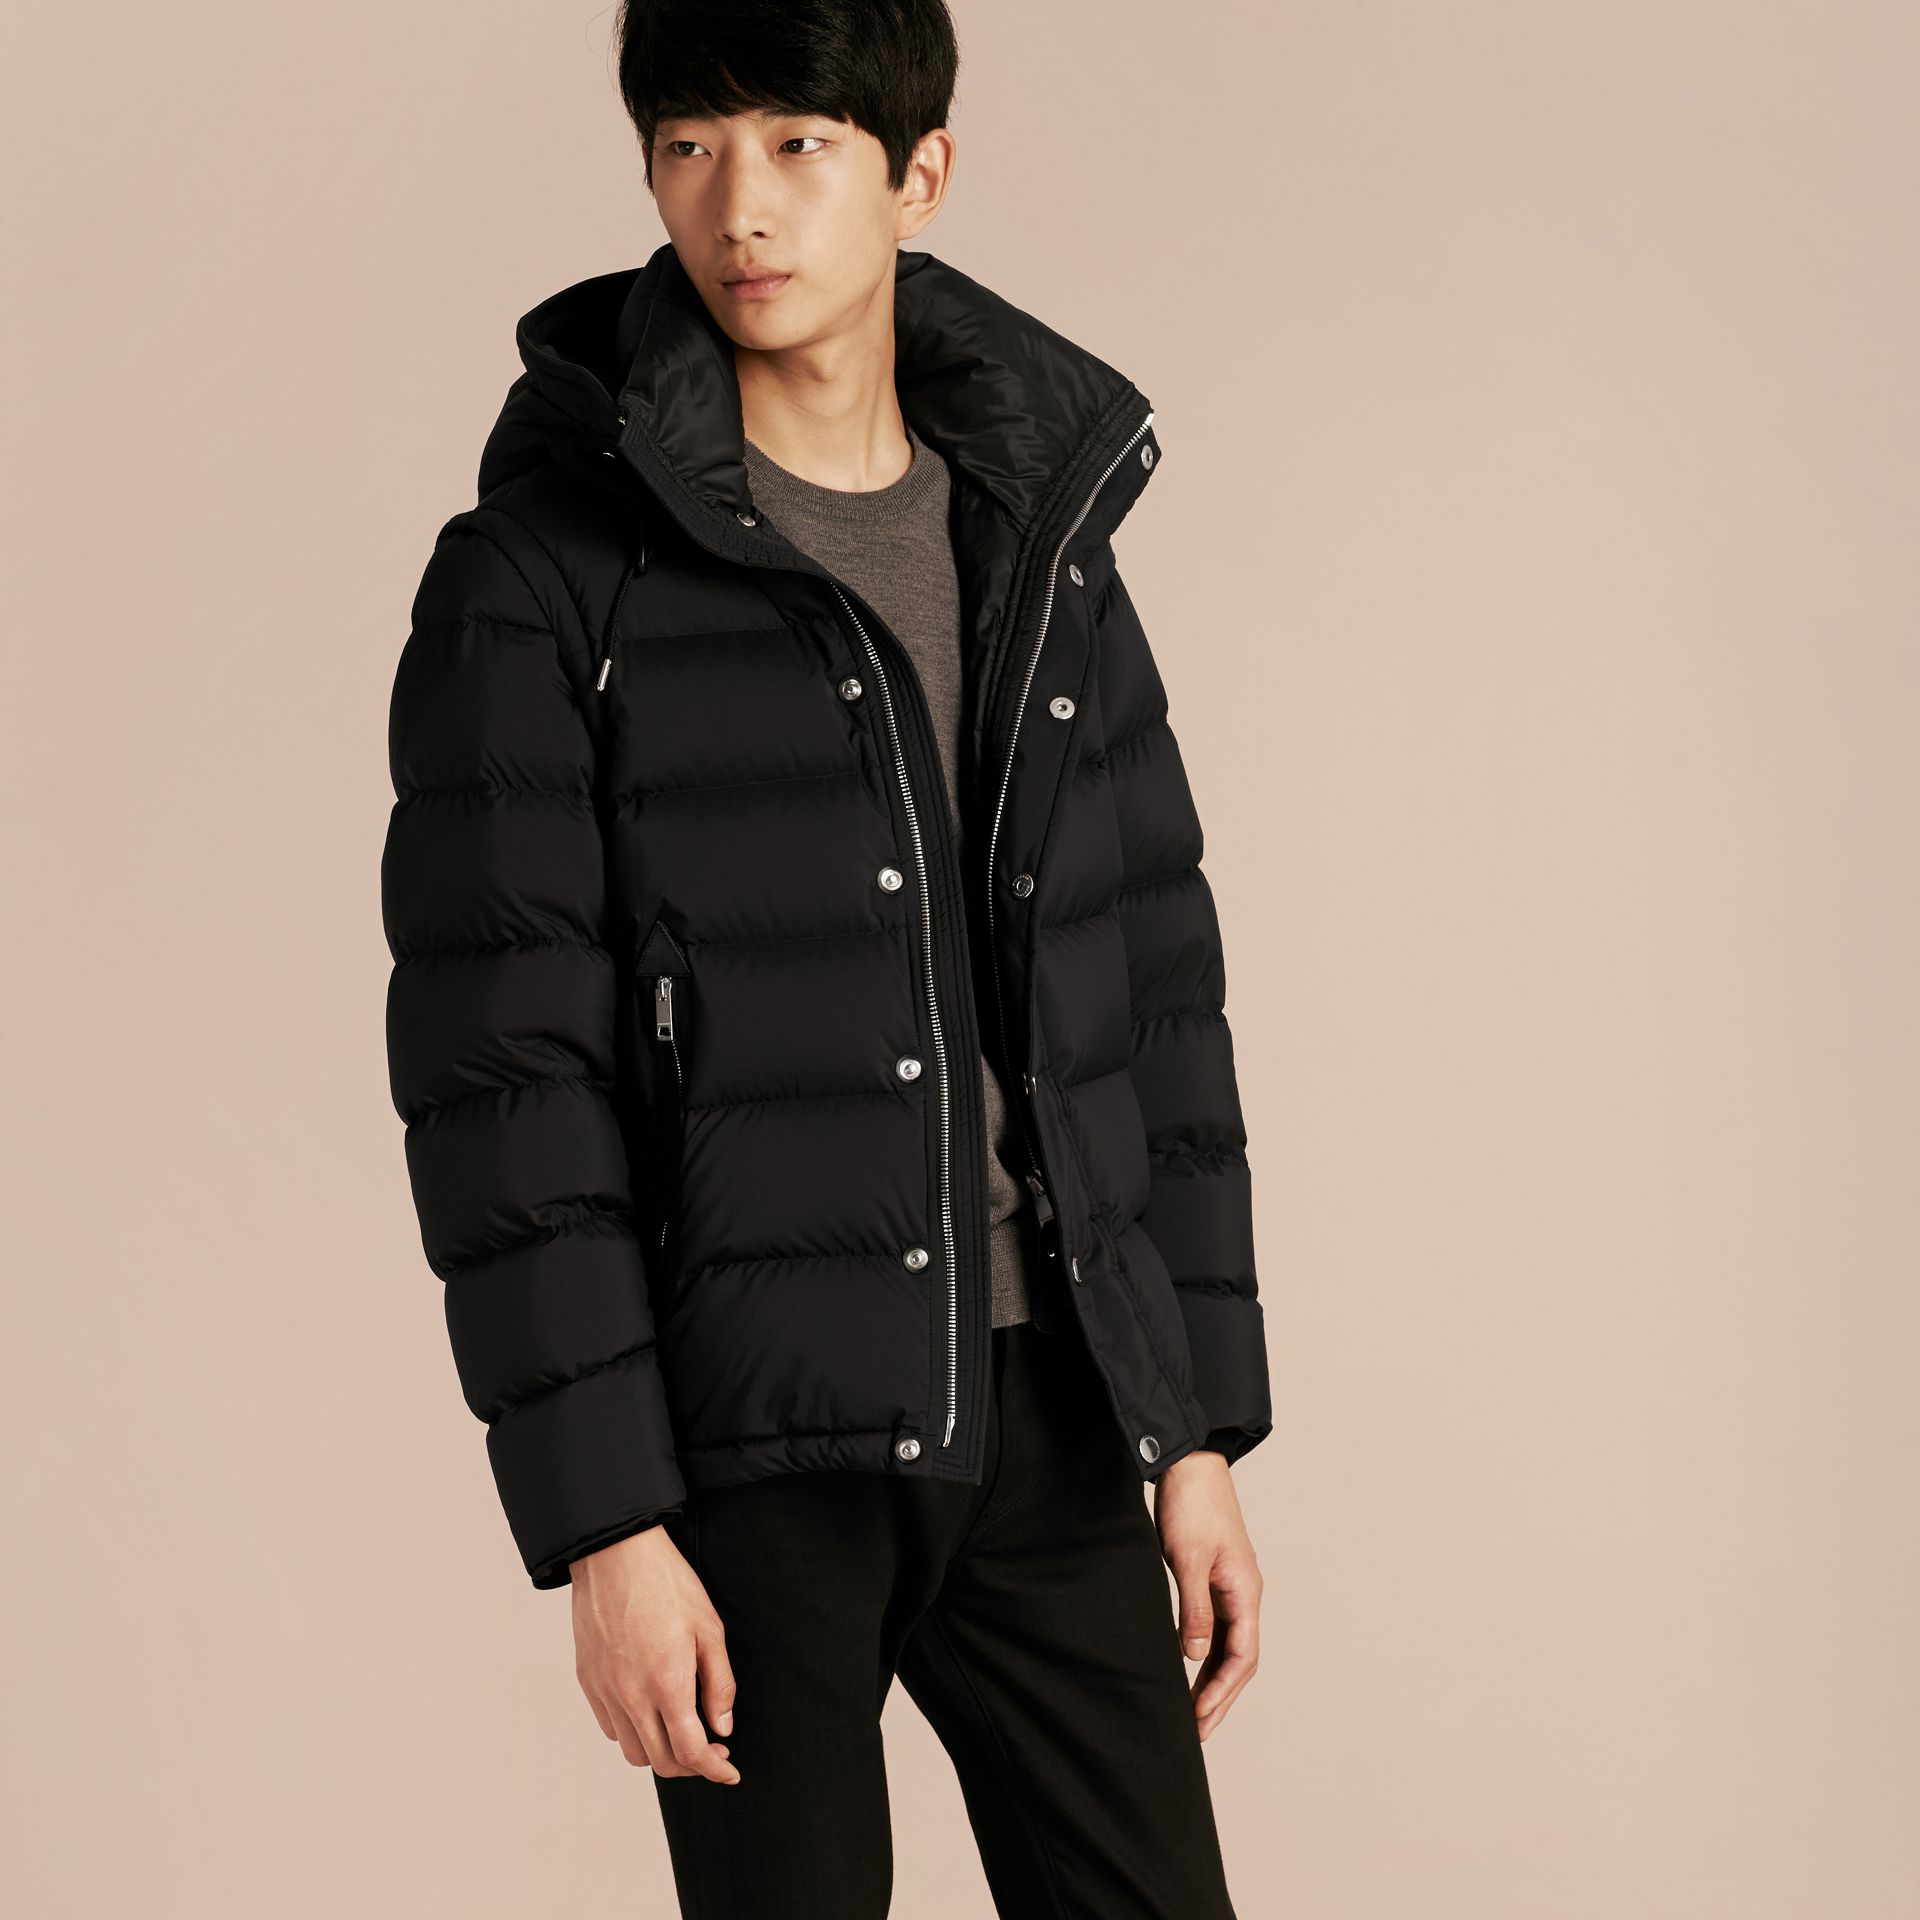 Black Down-filled Hooded Jacket with Detachable Sleeves Black - gallery image 7